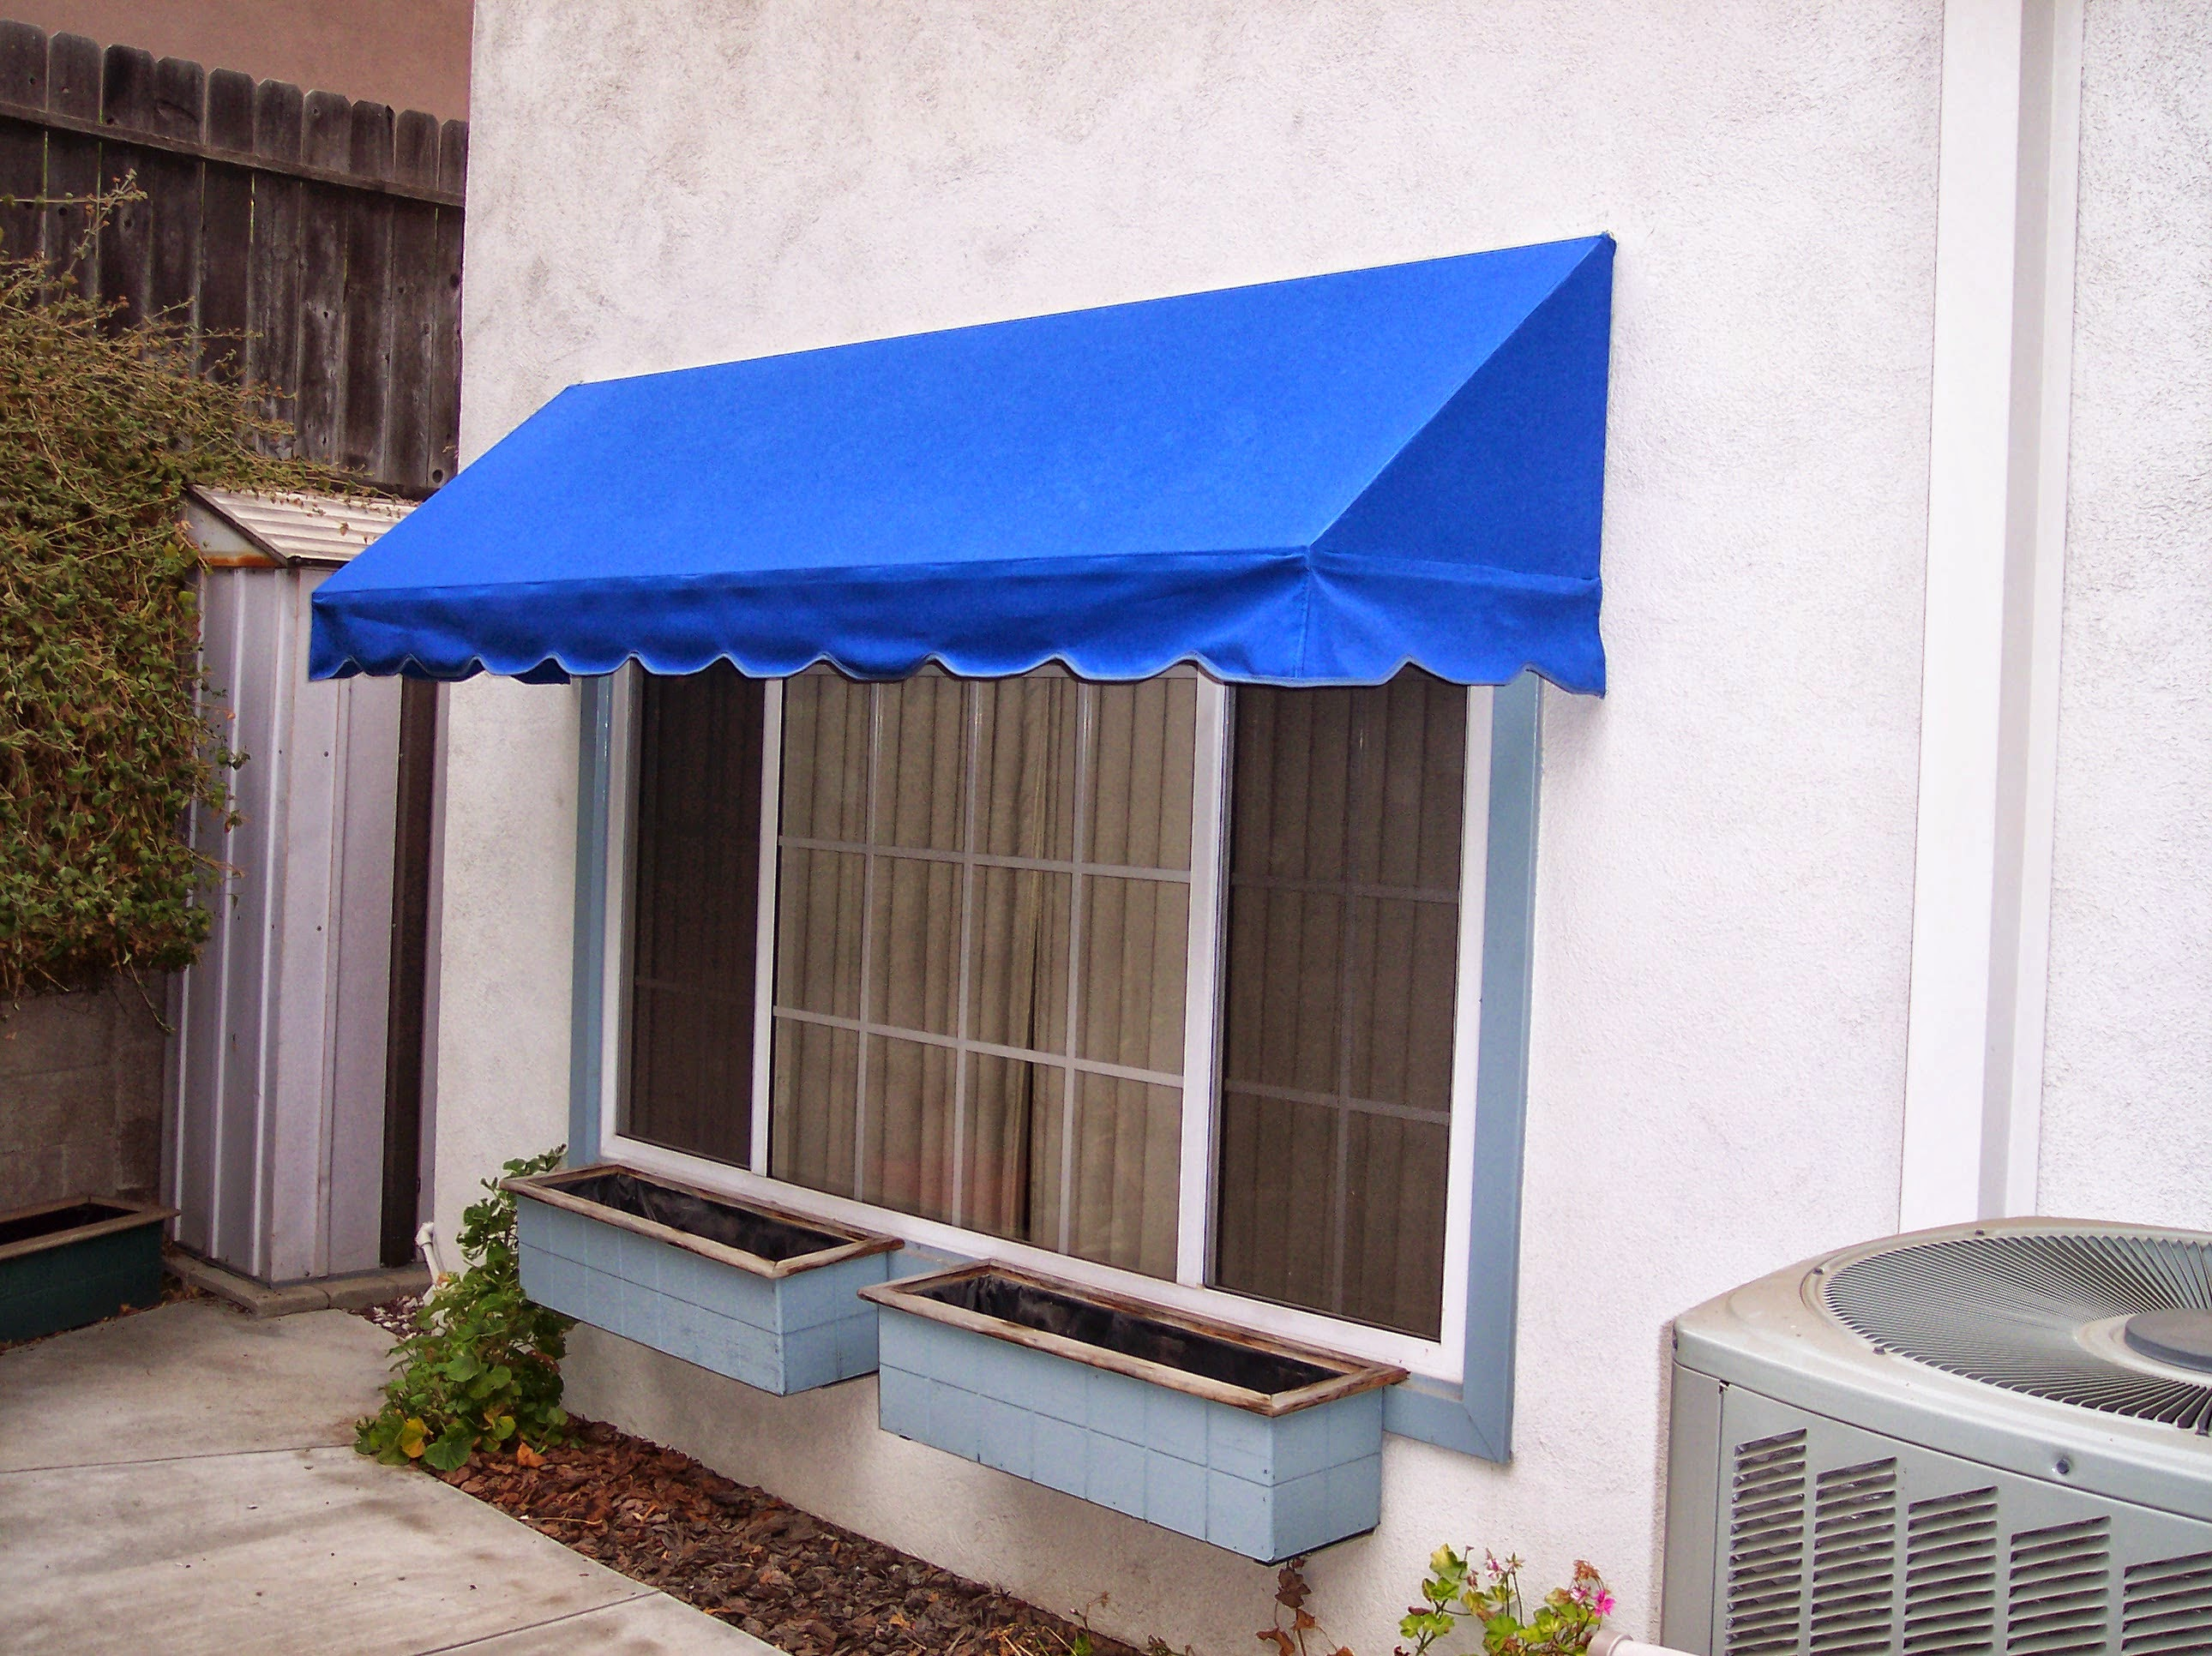 energy freestanding overhead home can custom provide with awnings support your for awning or works business company that canvas raleigh aluminum benefits saving